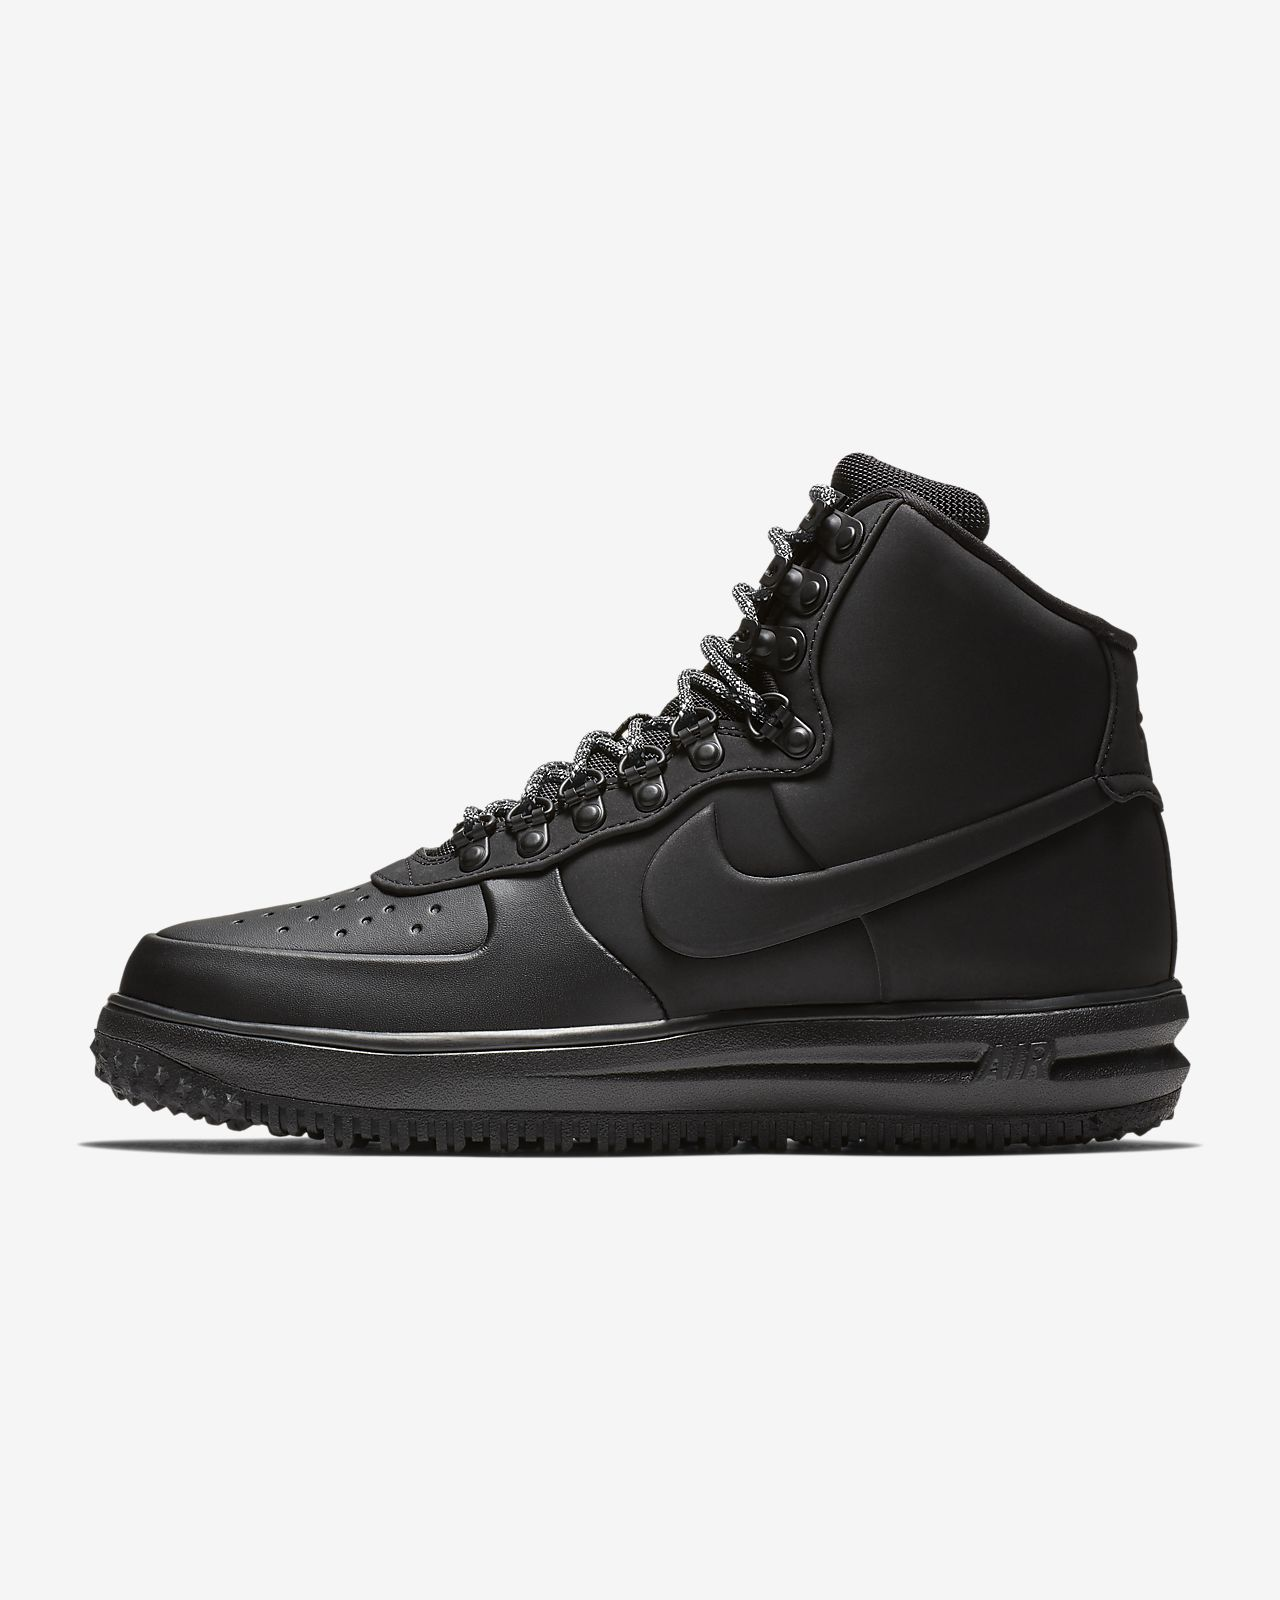 factory price f2aed cf449 ... Duckboot Nike Lunar Force 1  18 - Uomo